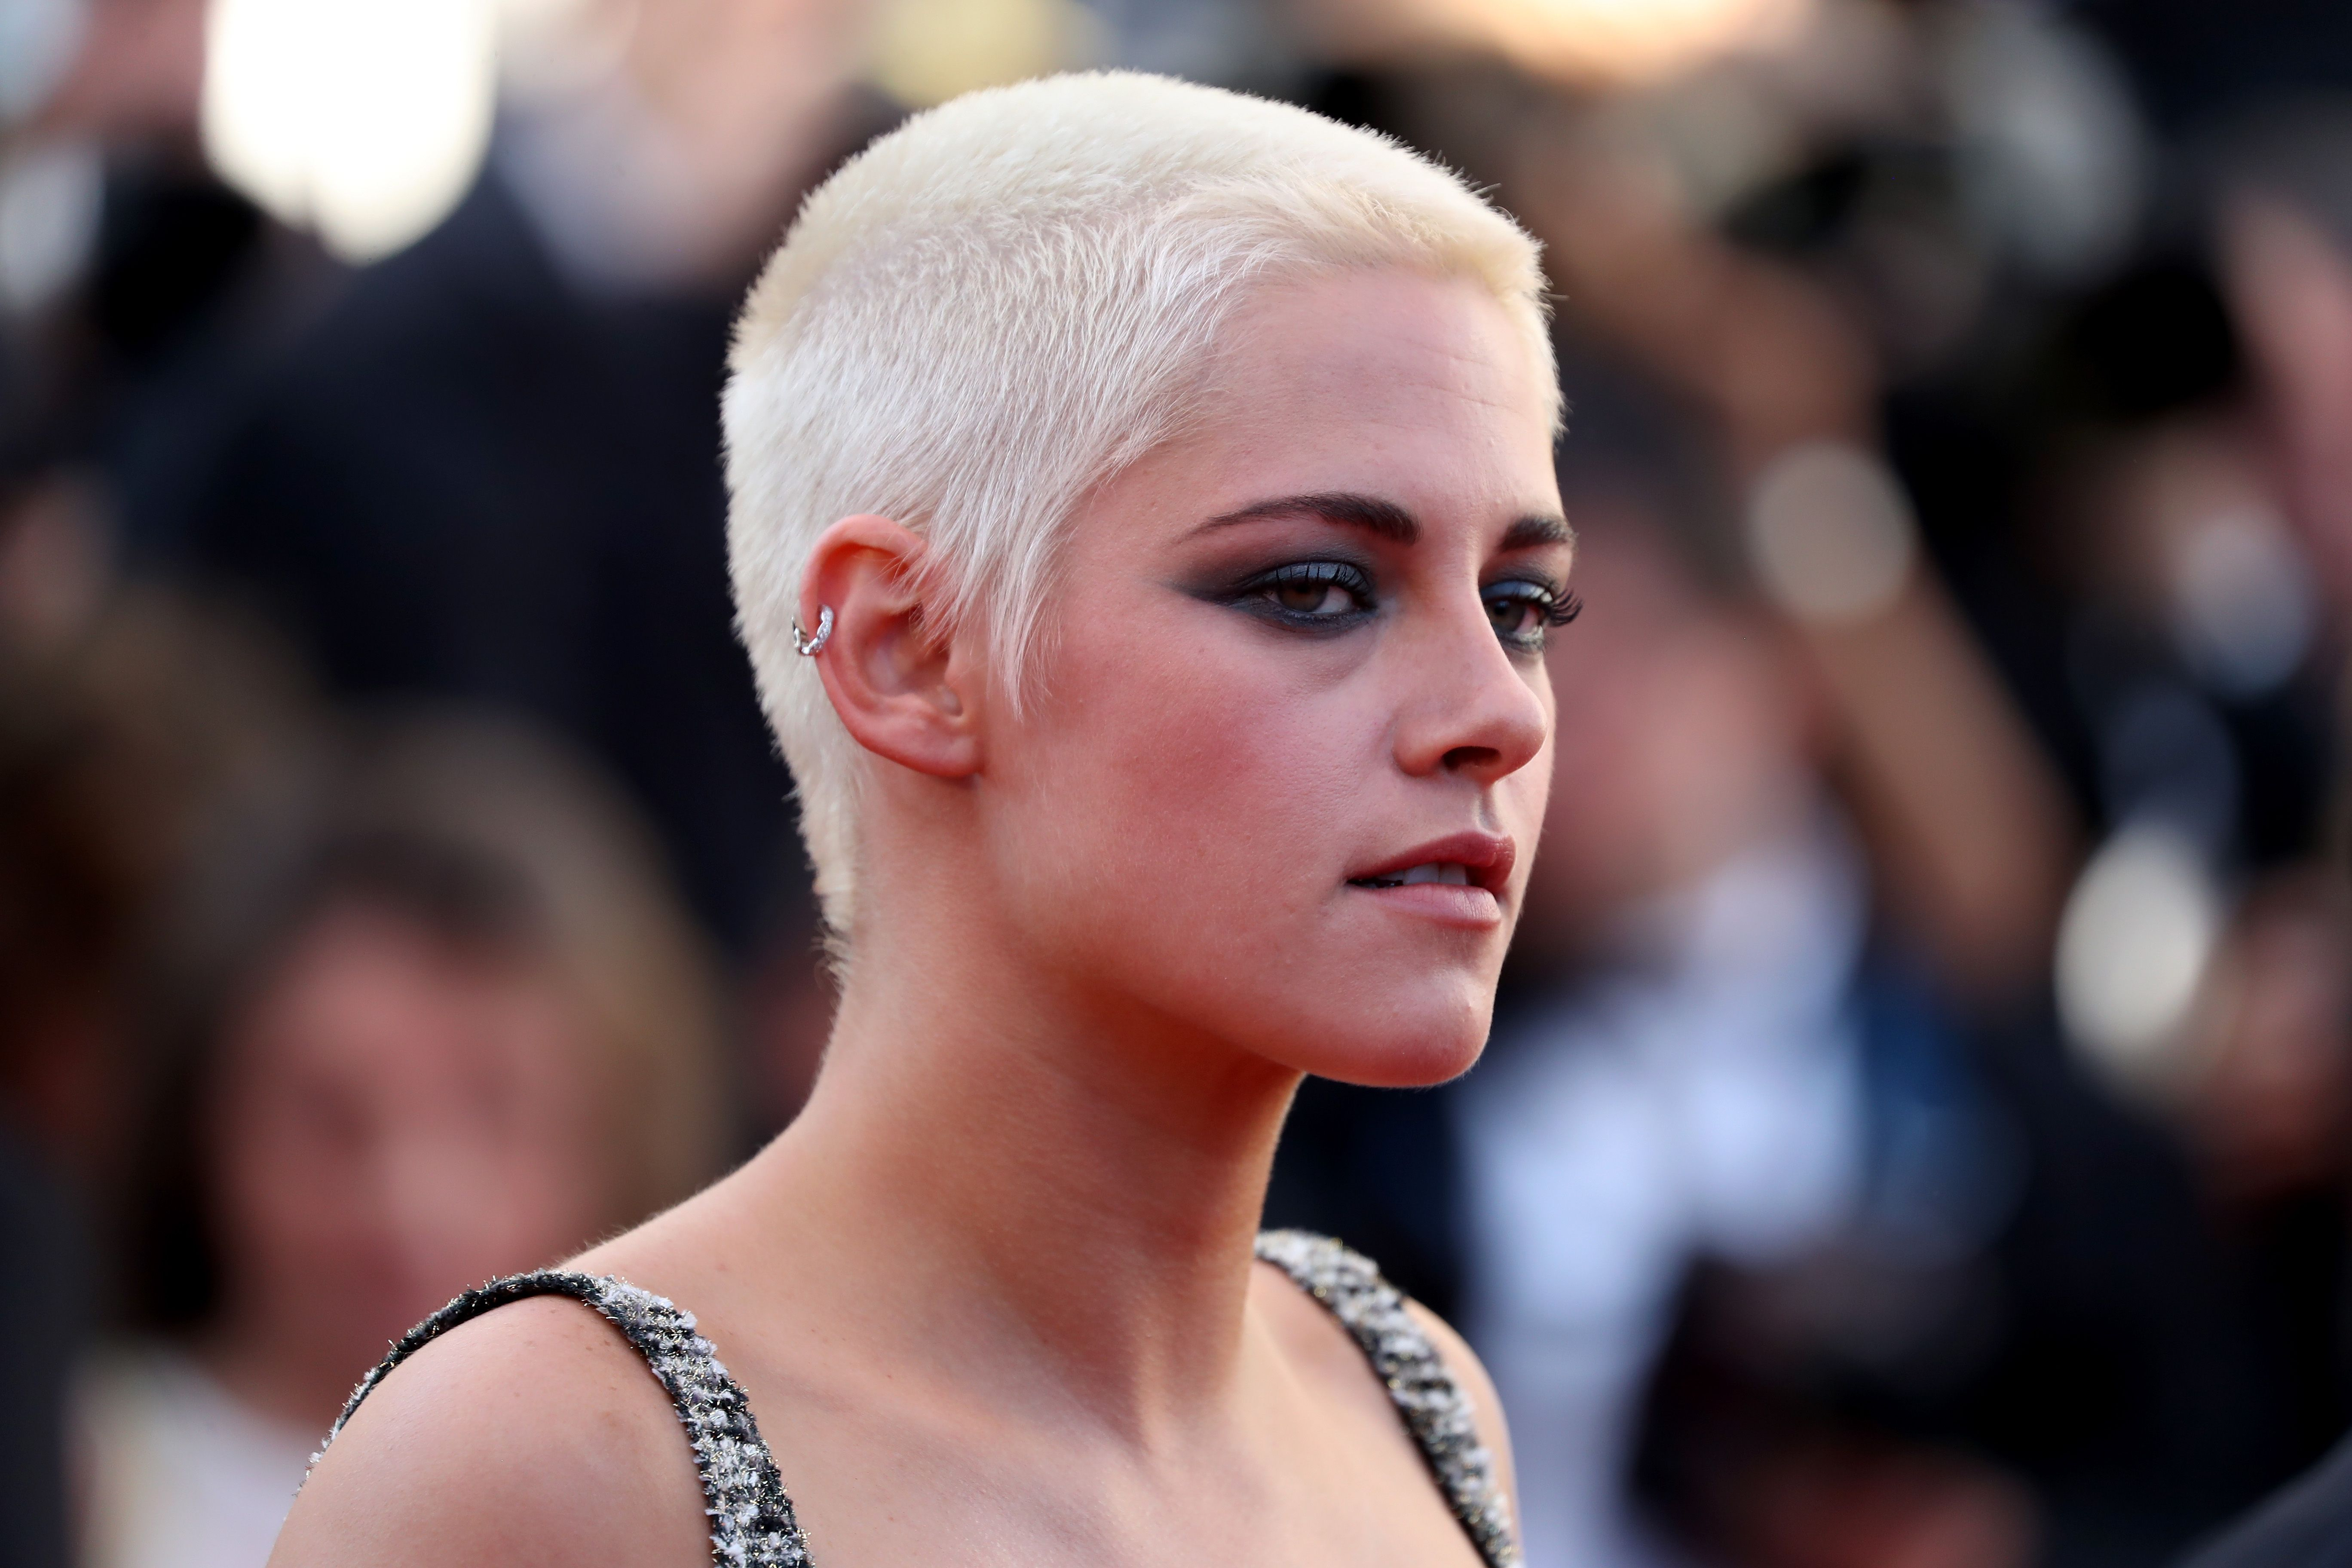 Kristen Stewart Attends The Come Swim Premiere At The Cannes Film Festival Talking Kristen Stewart